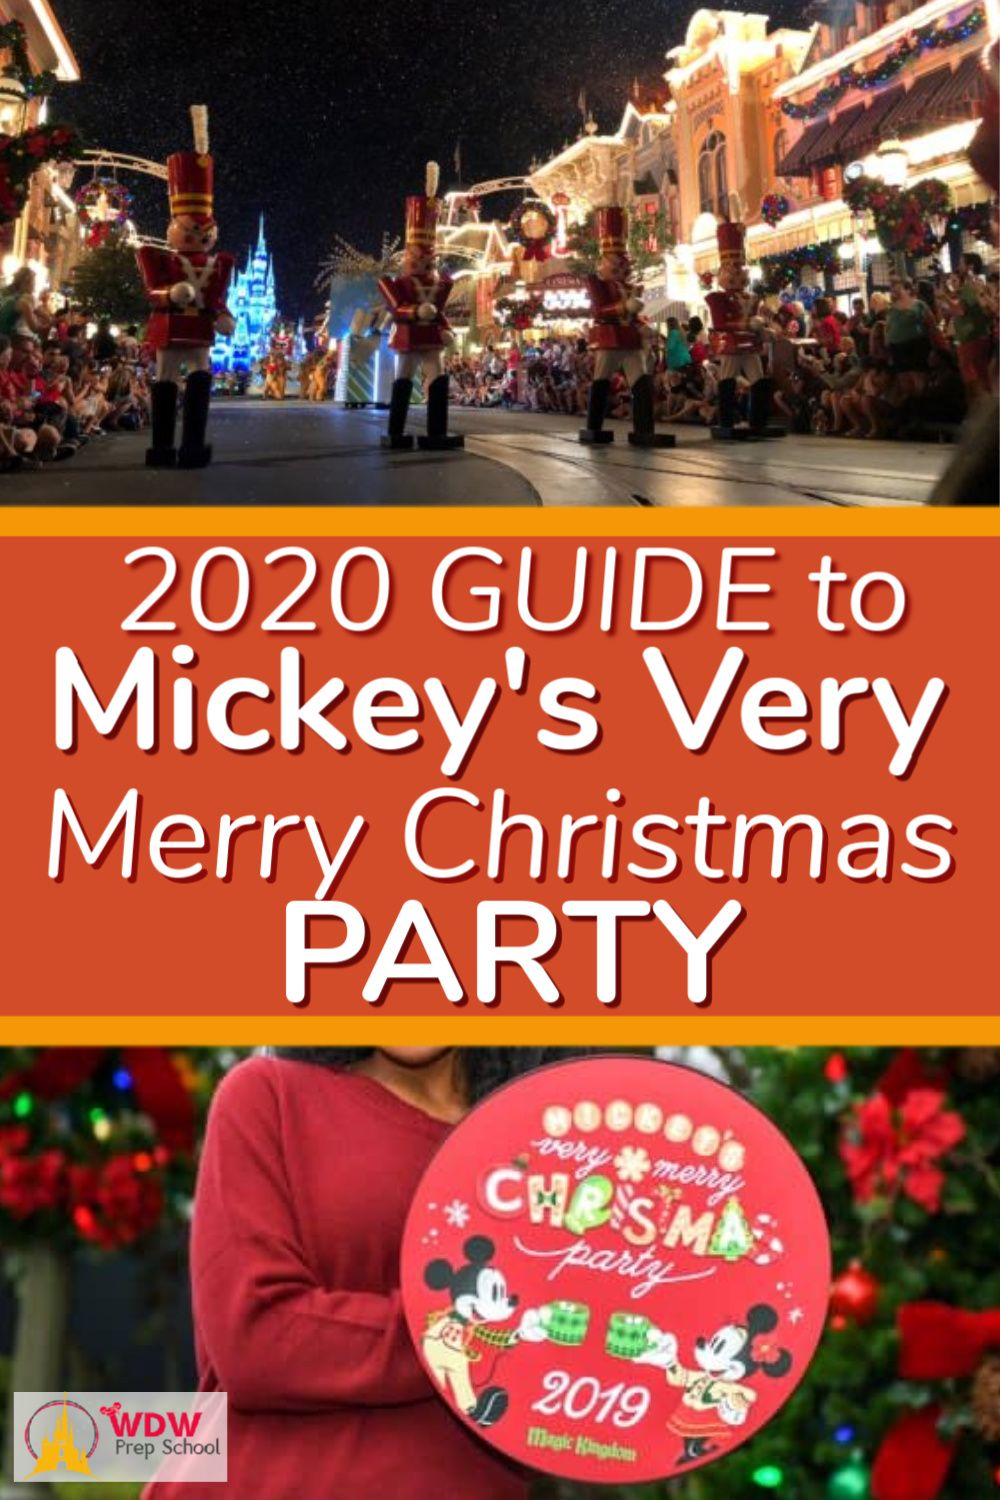 2020 Guide to Mickey's Very Merry Christmas Party in 2020